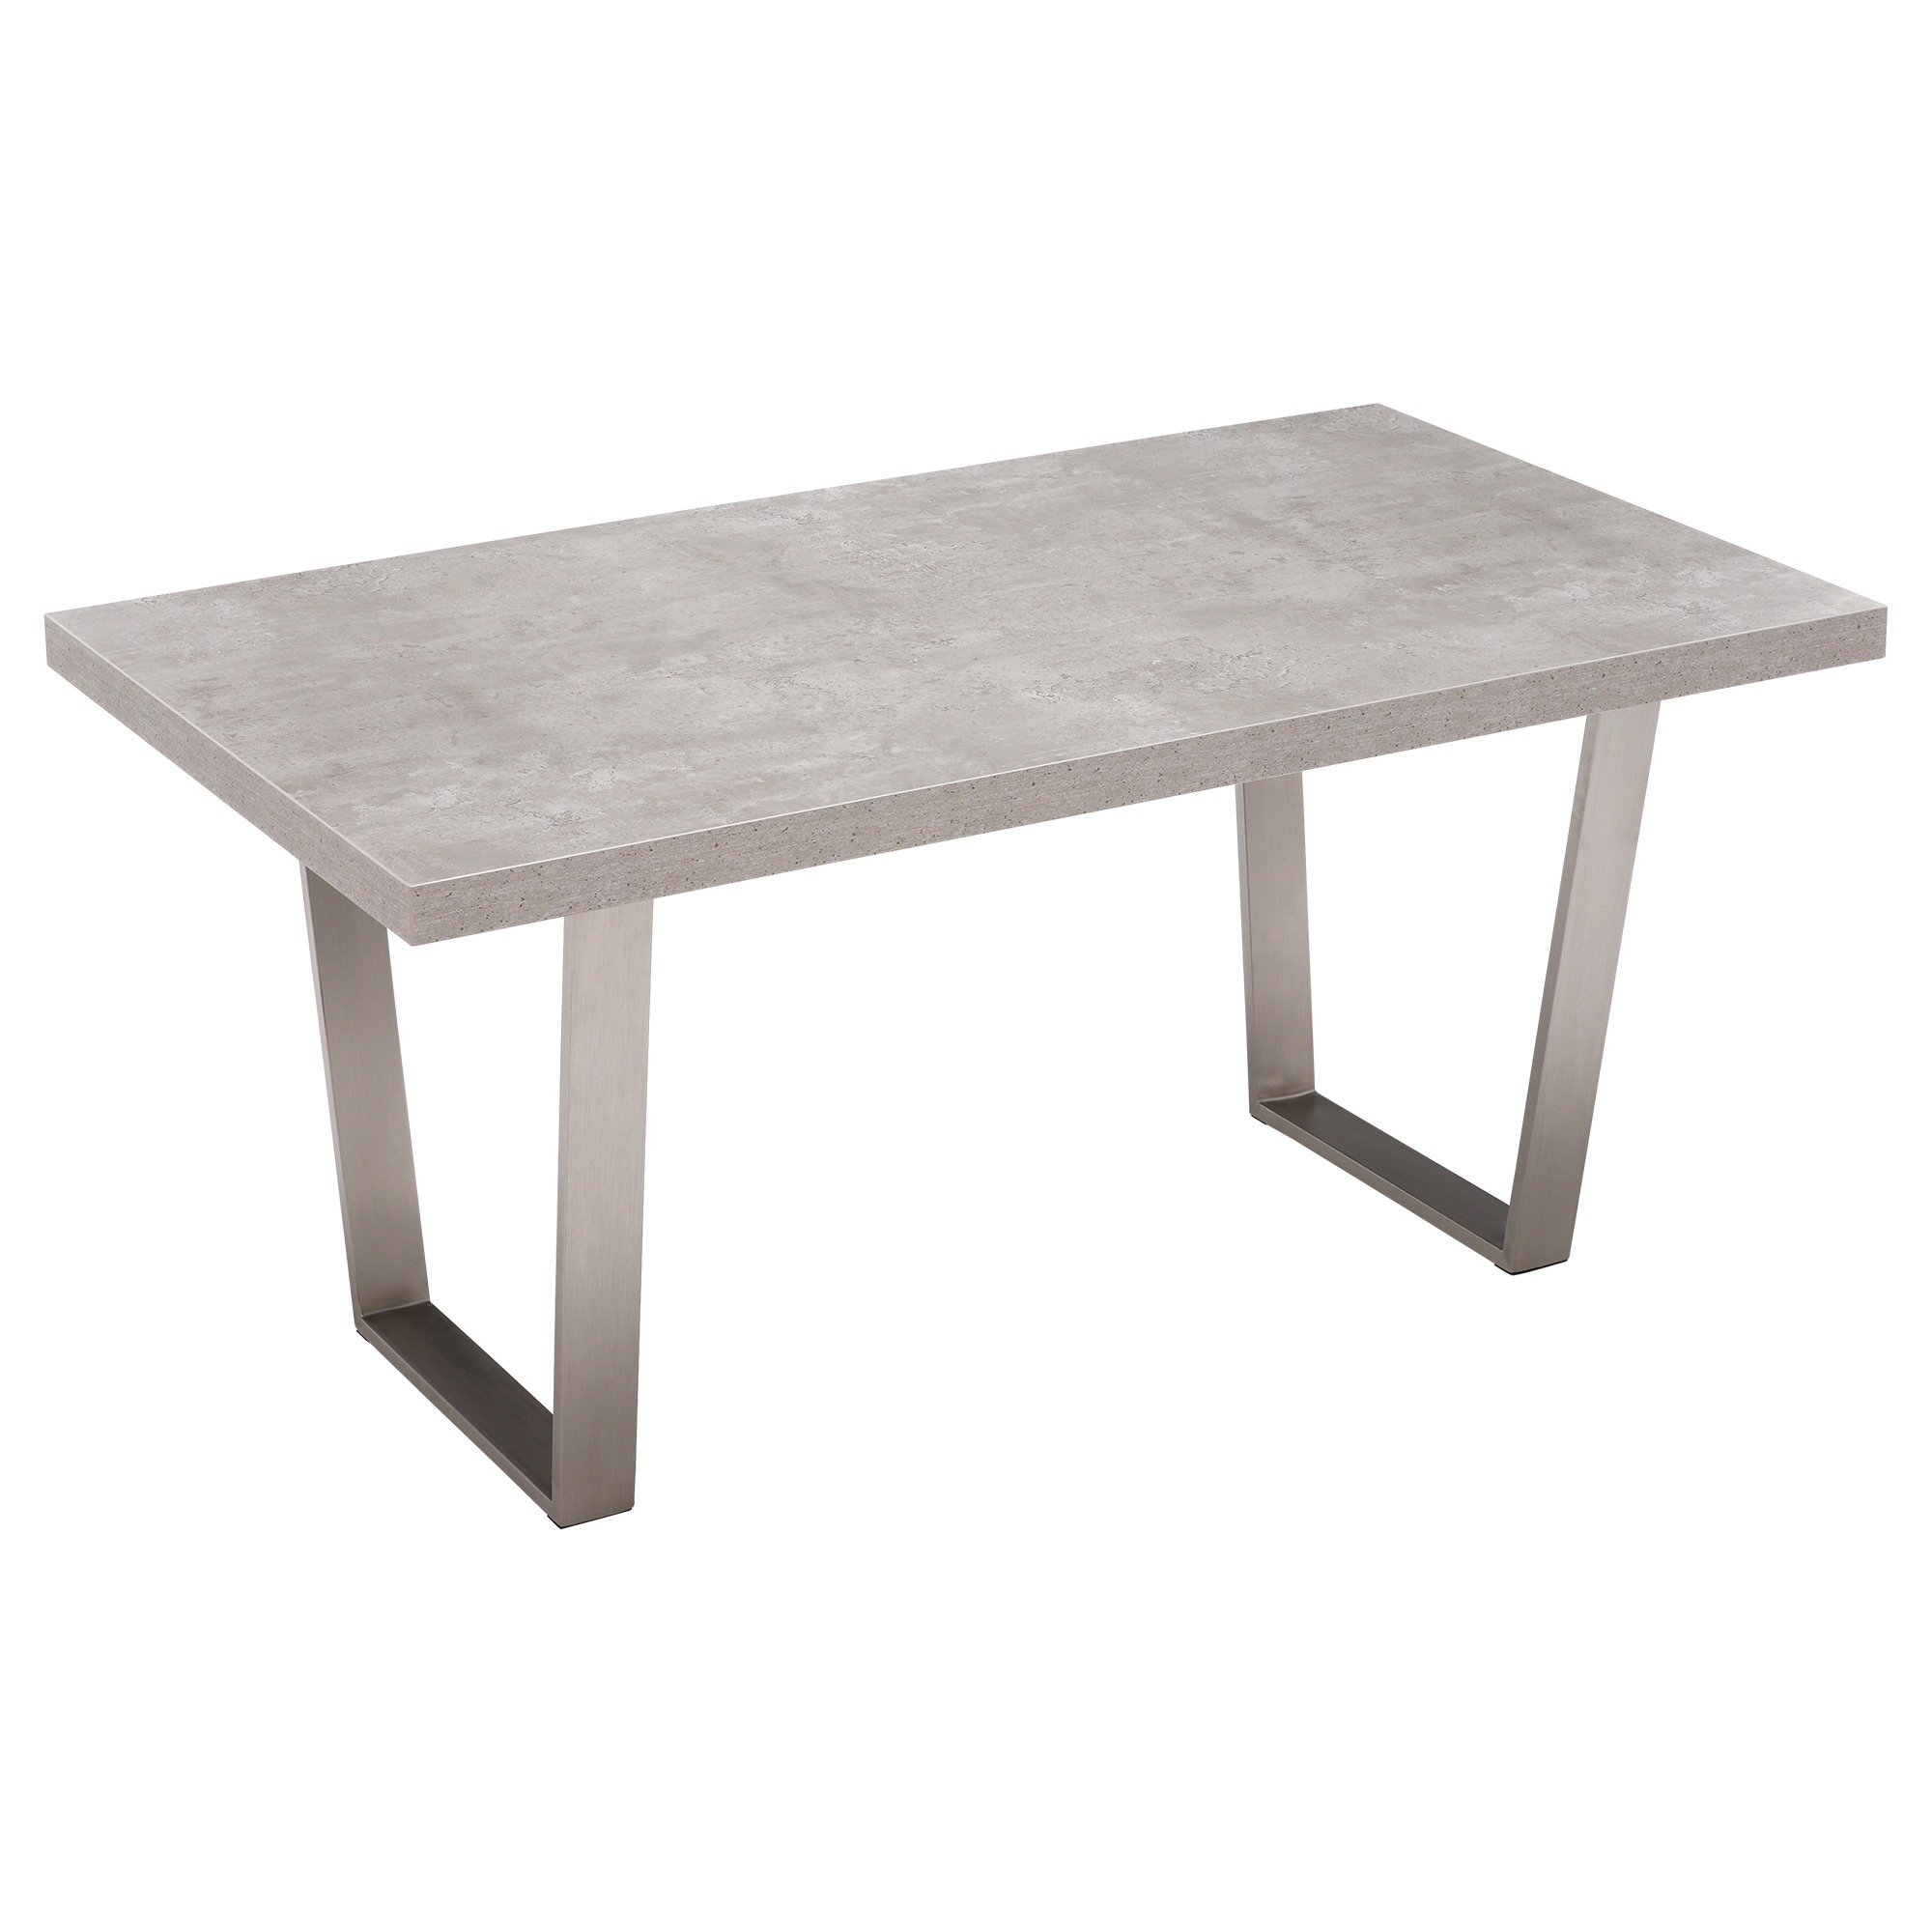 CONCRETE LOOK DINING TABLE - L200cm x D100cm x H75cm